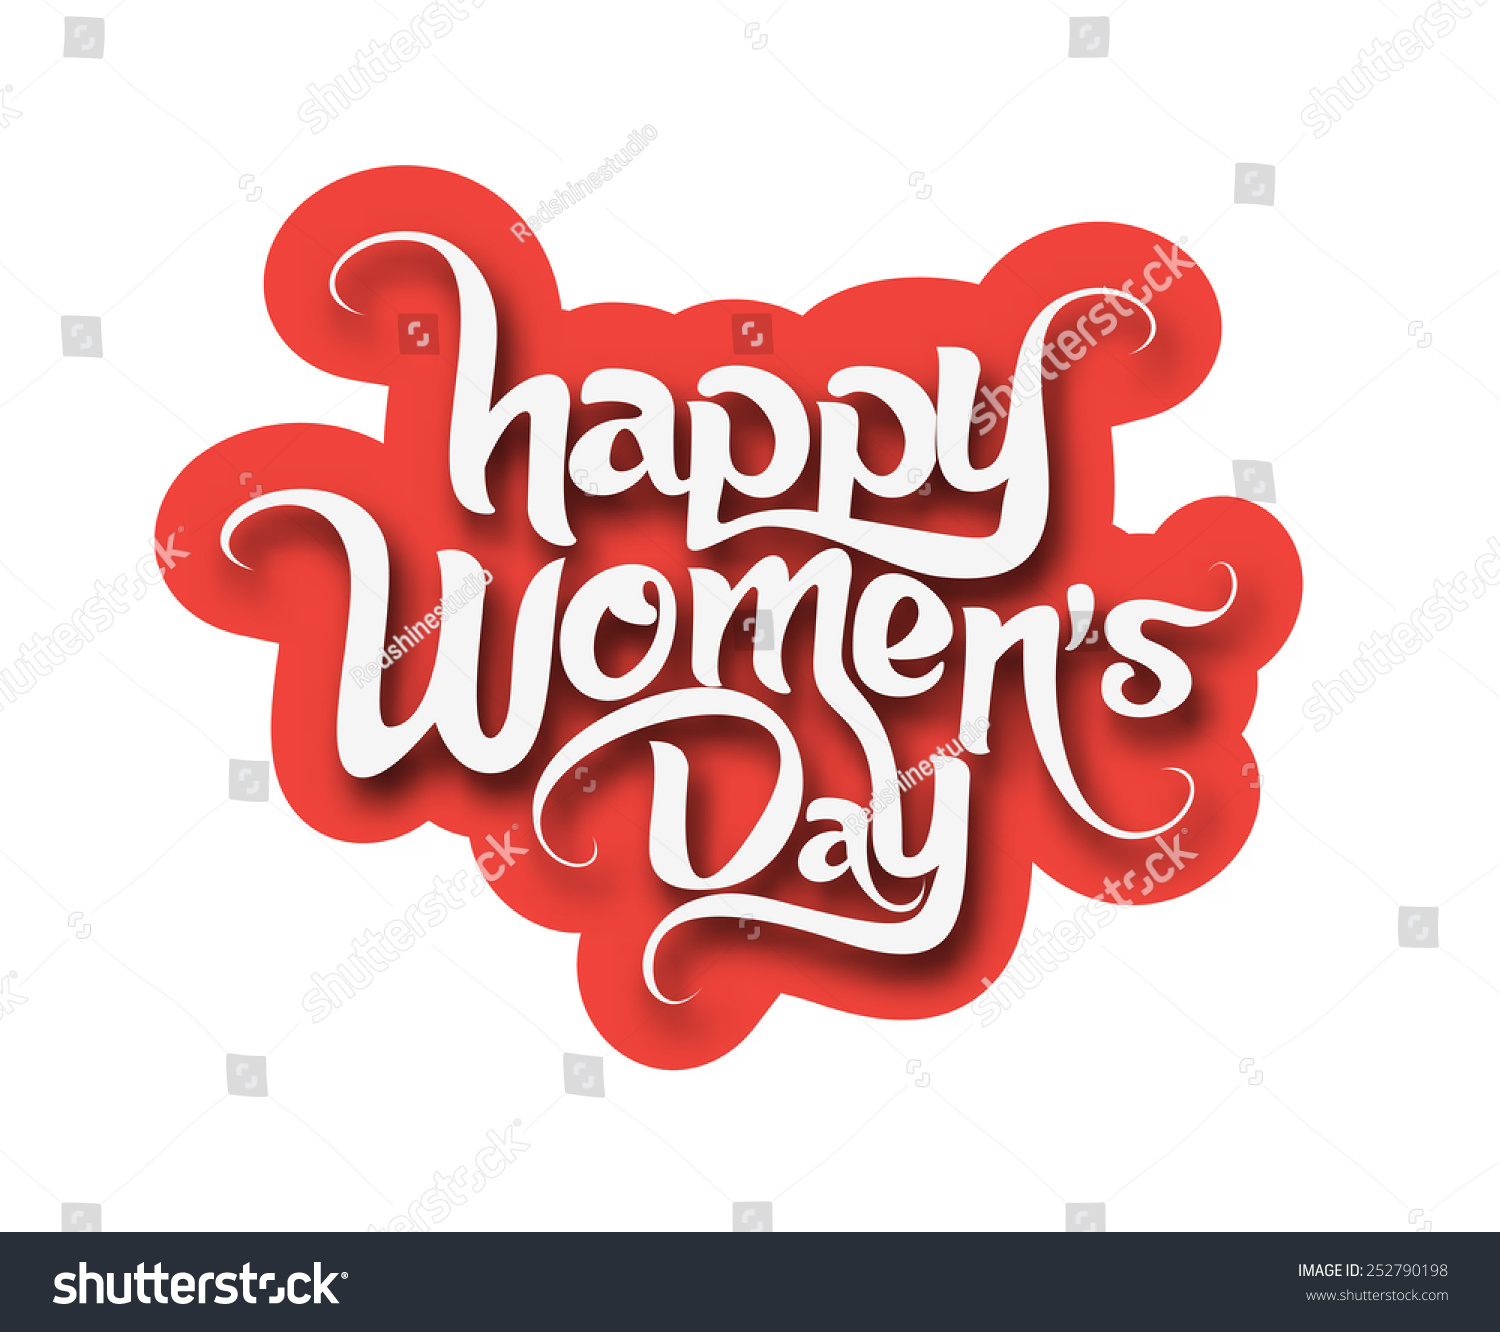 happy womens day text design element stock vector